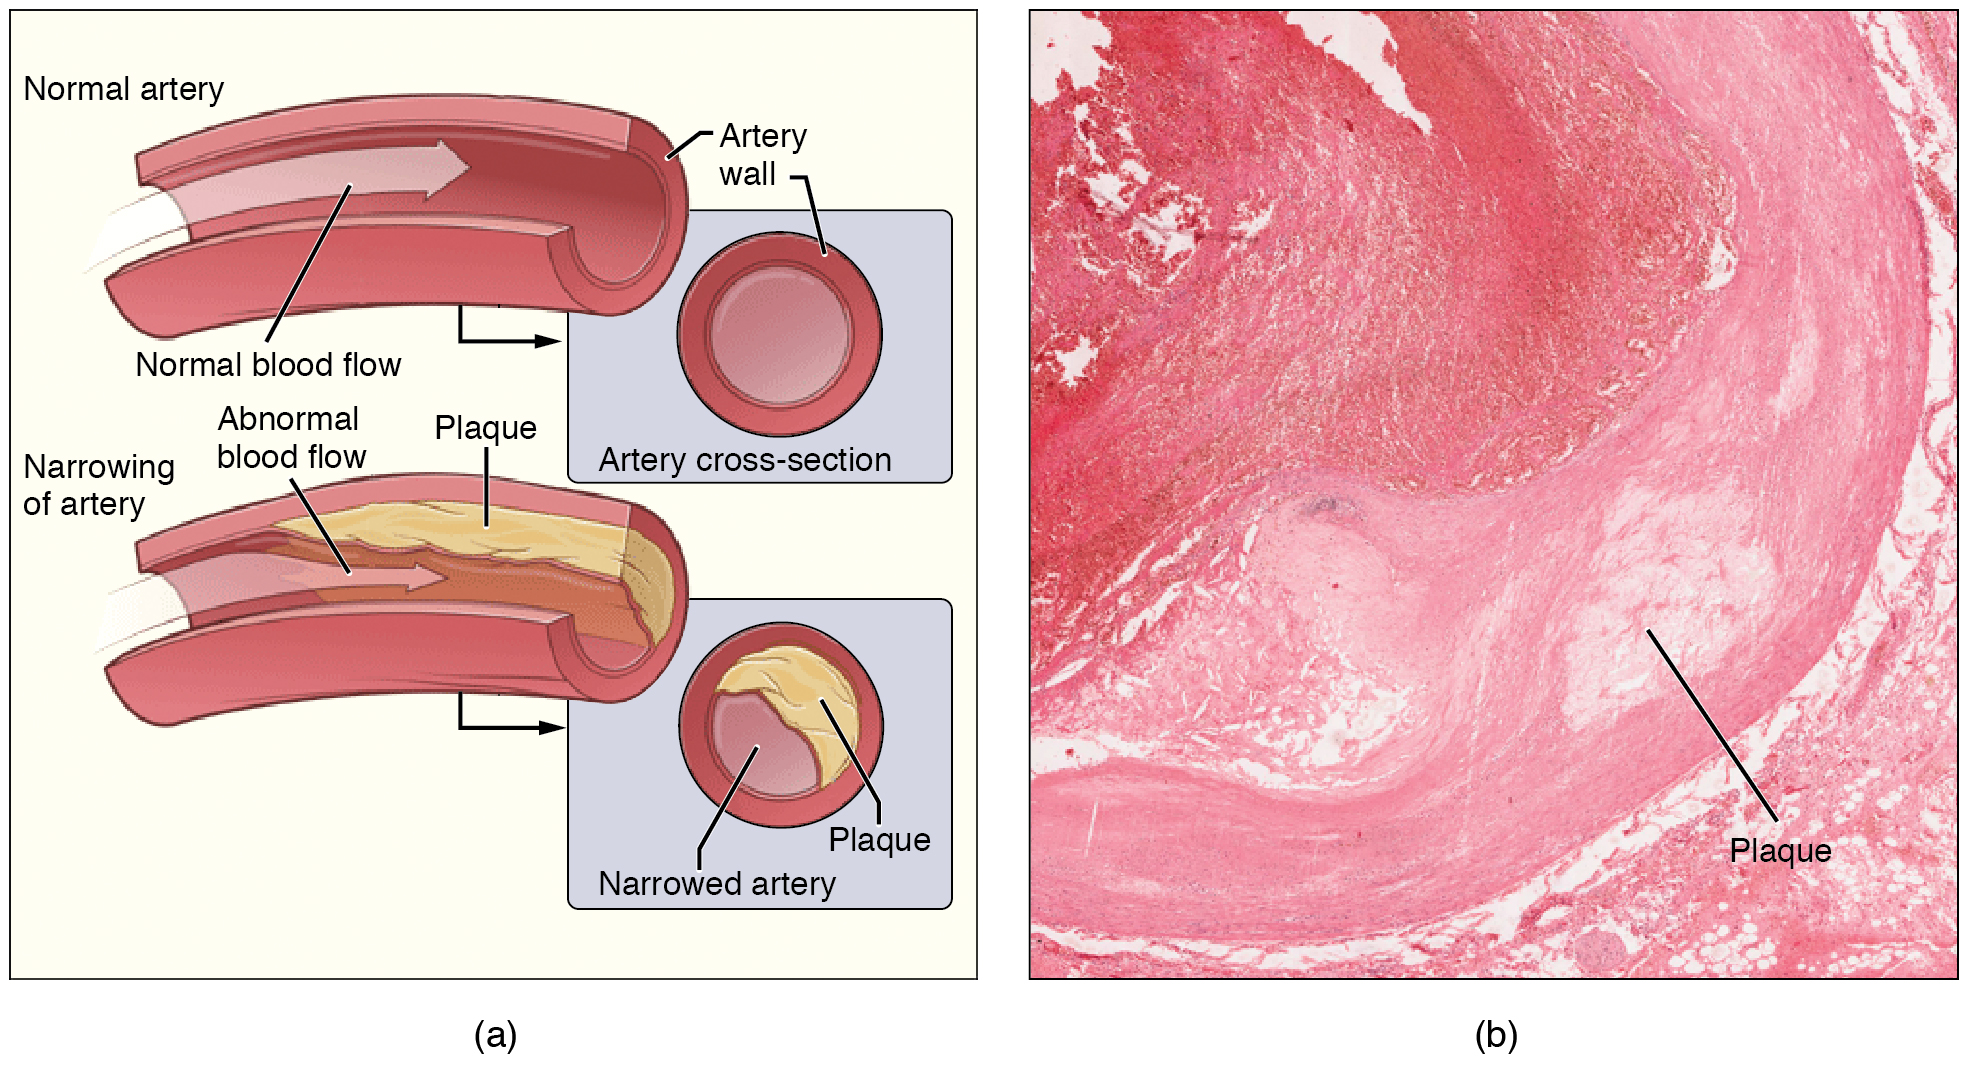 Illustration and micrograph, showing atherosclerosis